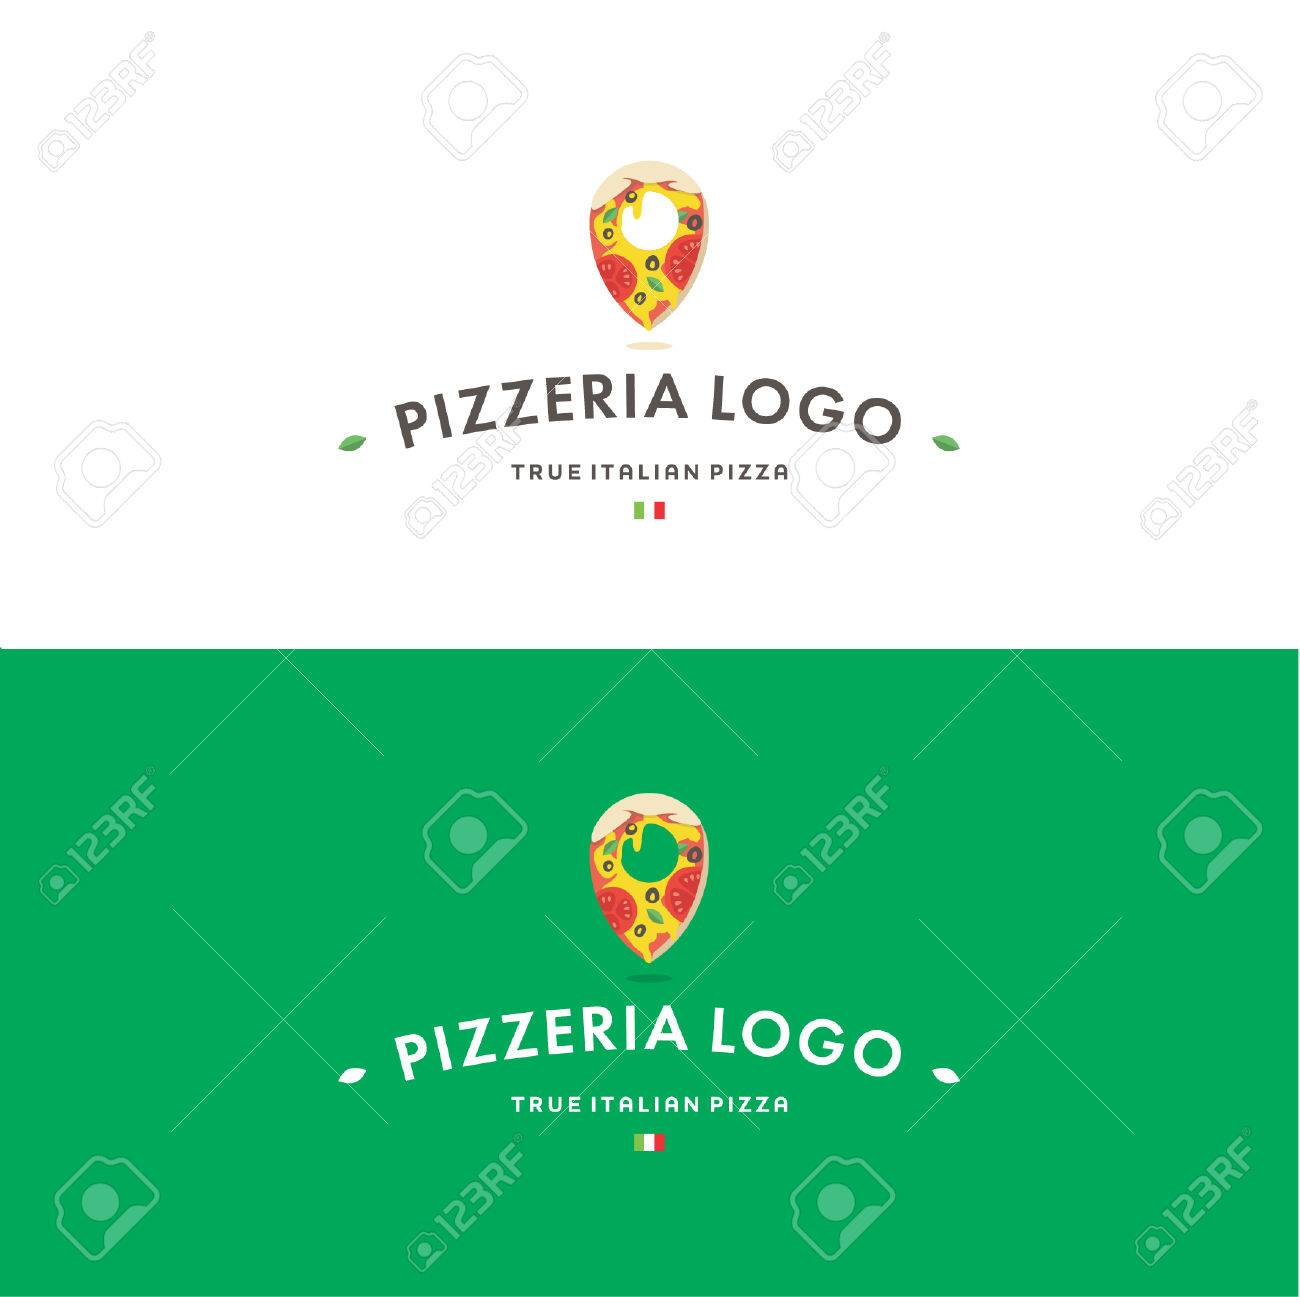 Pizzeria Logo Template Tasty Delicious Pizza And Pin With Italian